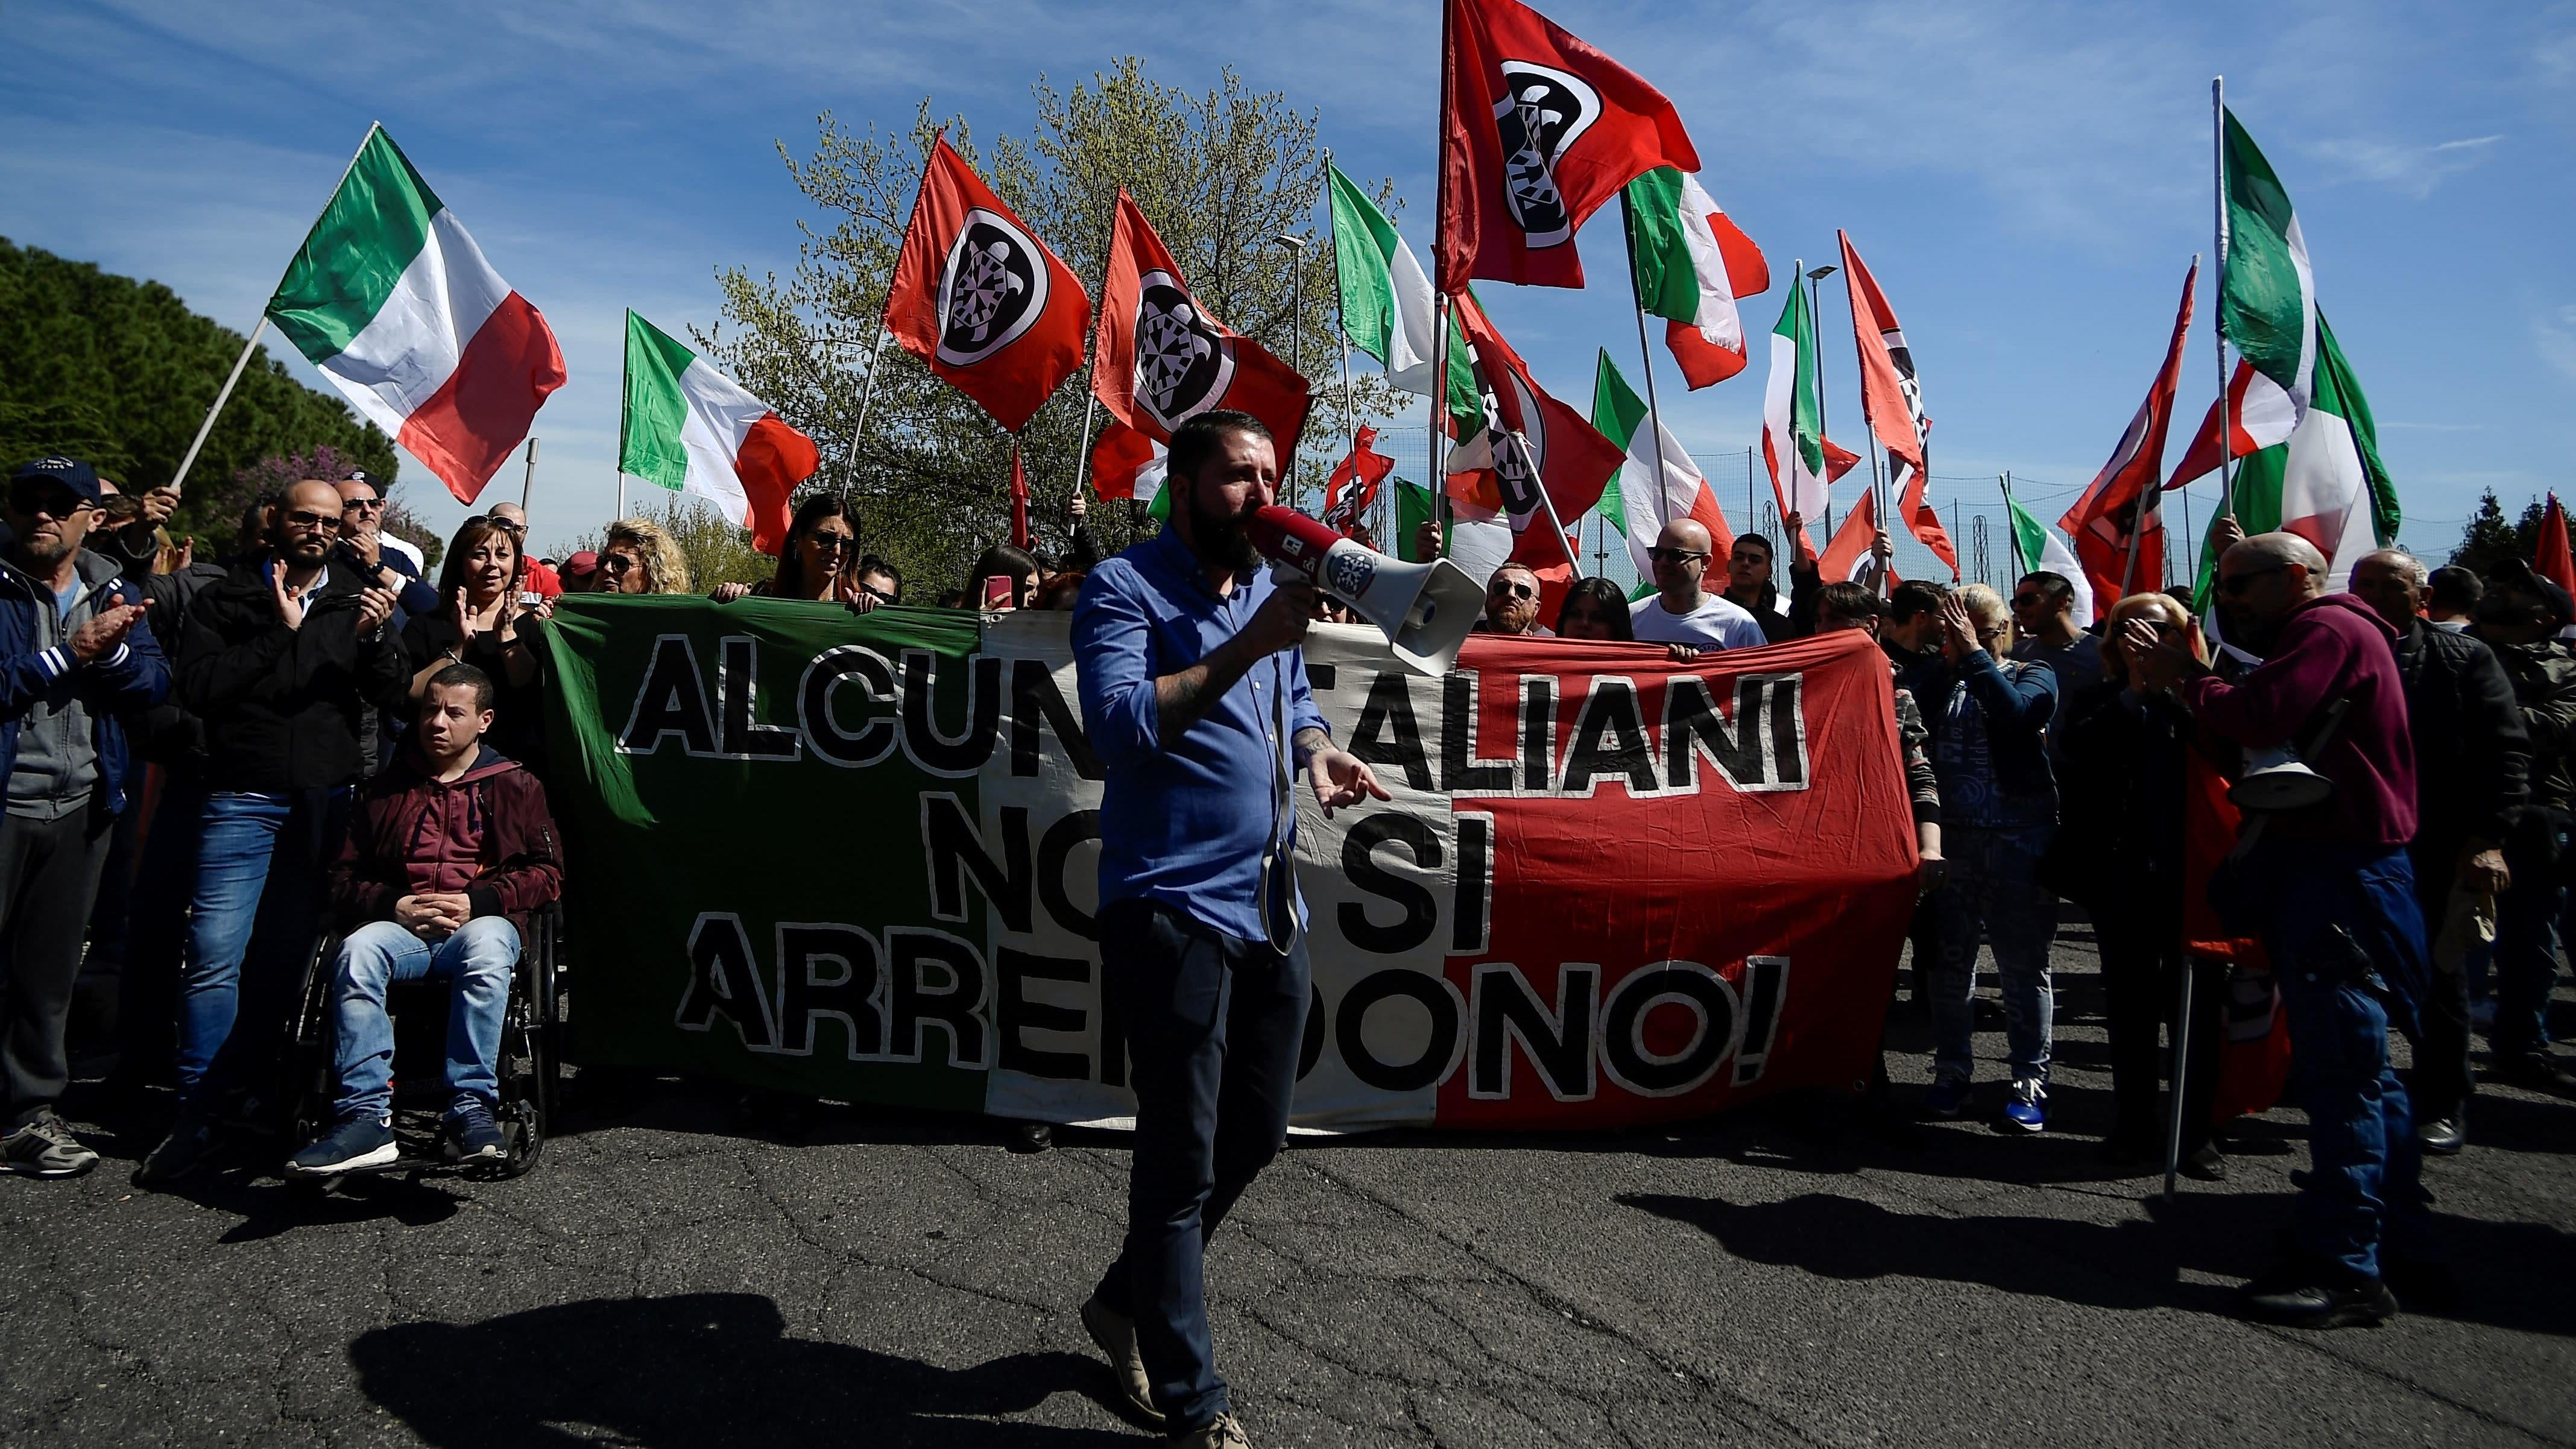 Italian Court Orders Facebook To Restore Neo-Fascist Party's Account